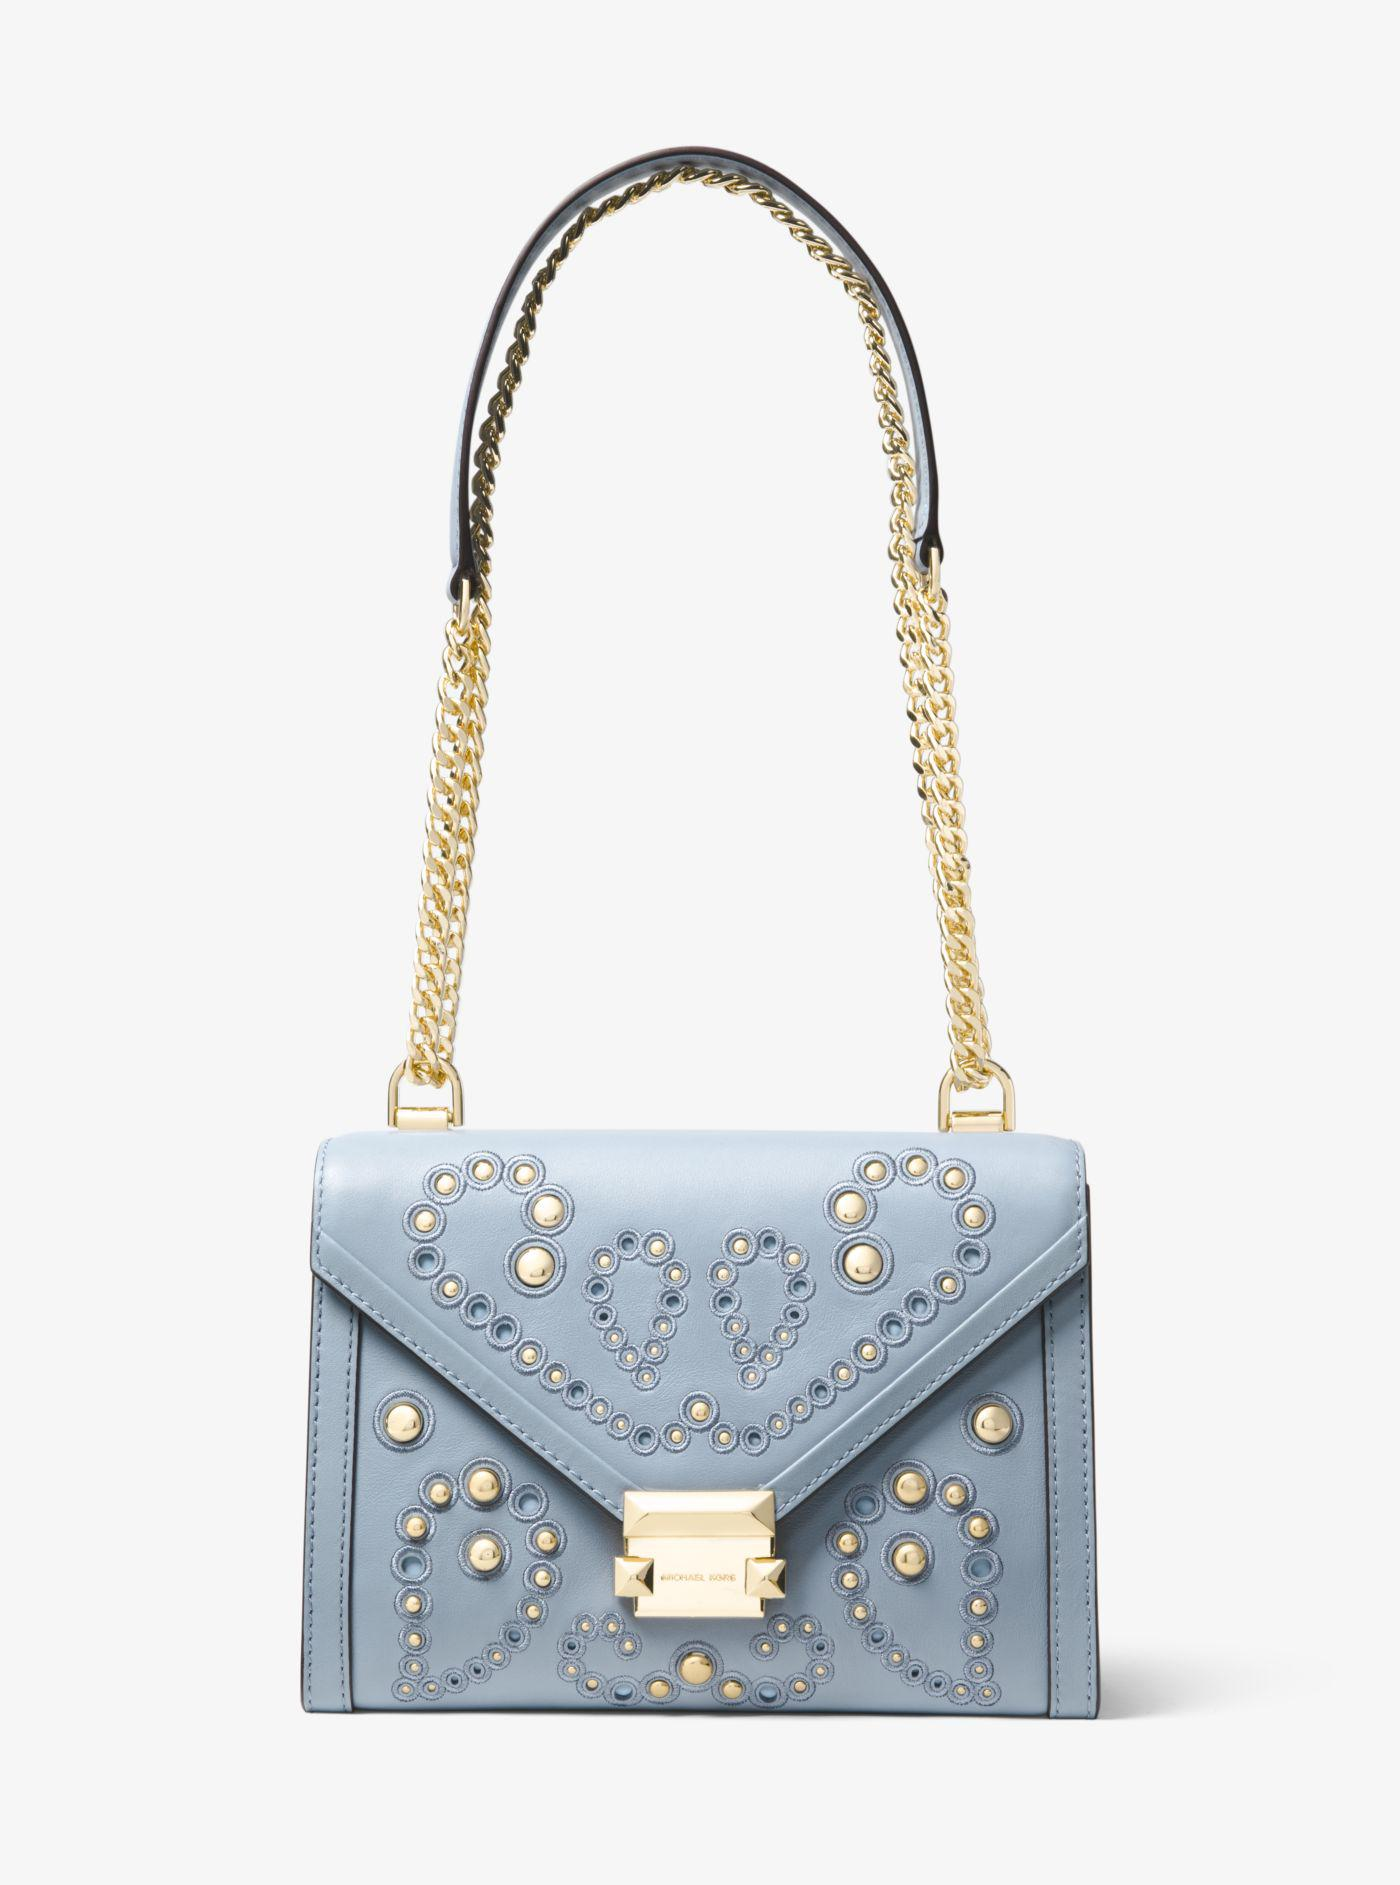 22a8f800b5f9 ... canada michael kors. womens blue whitney large embellished leather  convertible shoulder bag 6e0be 2d659